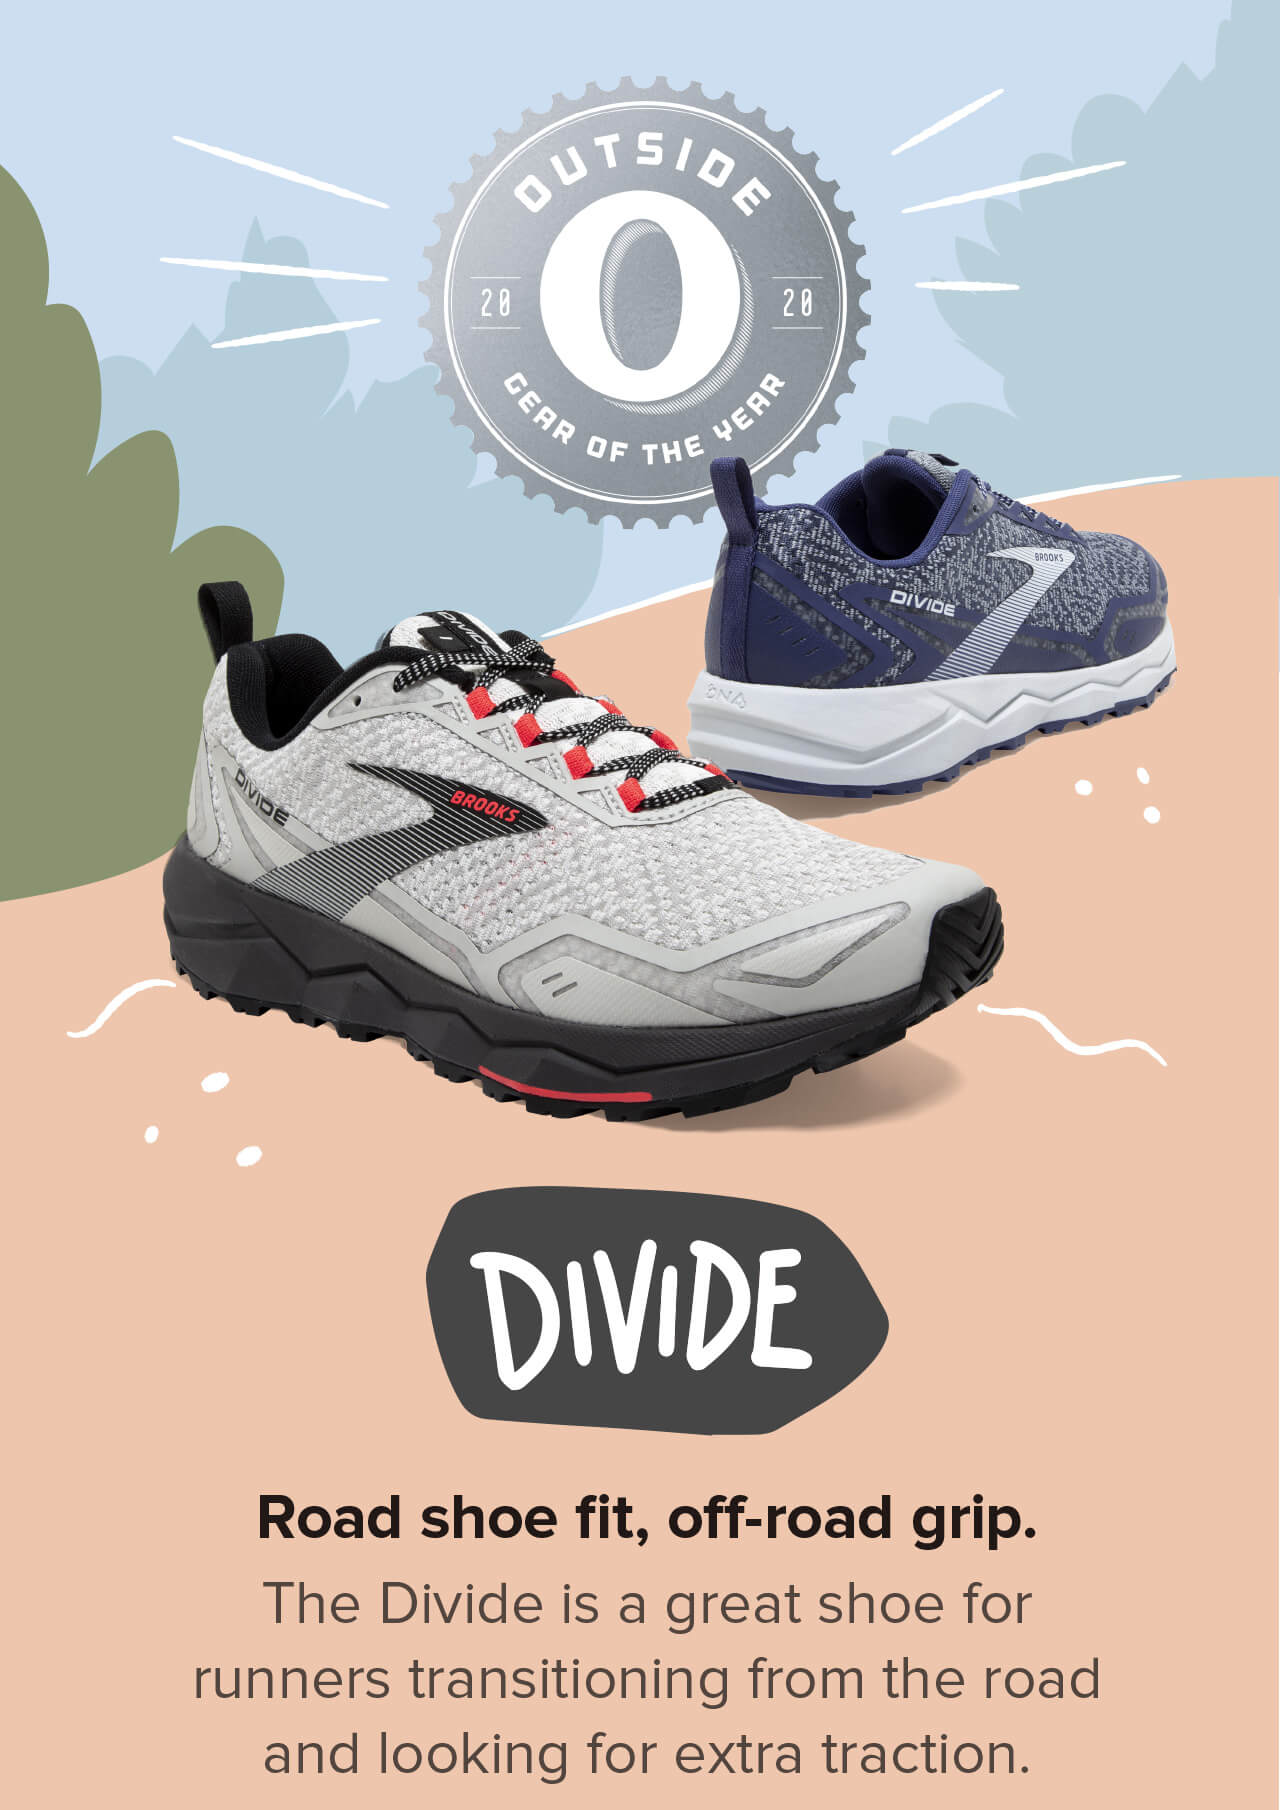 DIVIDE. Road shoe fit, off-road grip. The Divide is a great shoe for runners transitioning from the road and looking for extra traction.